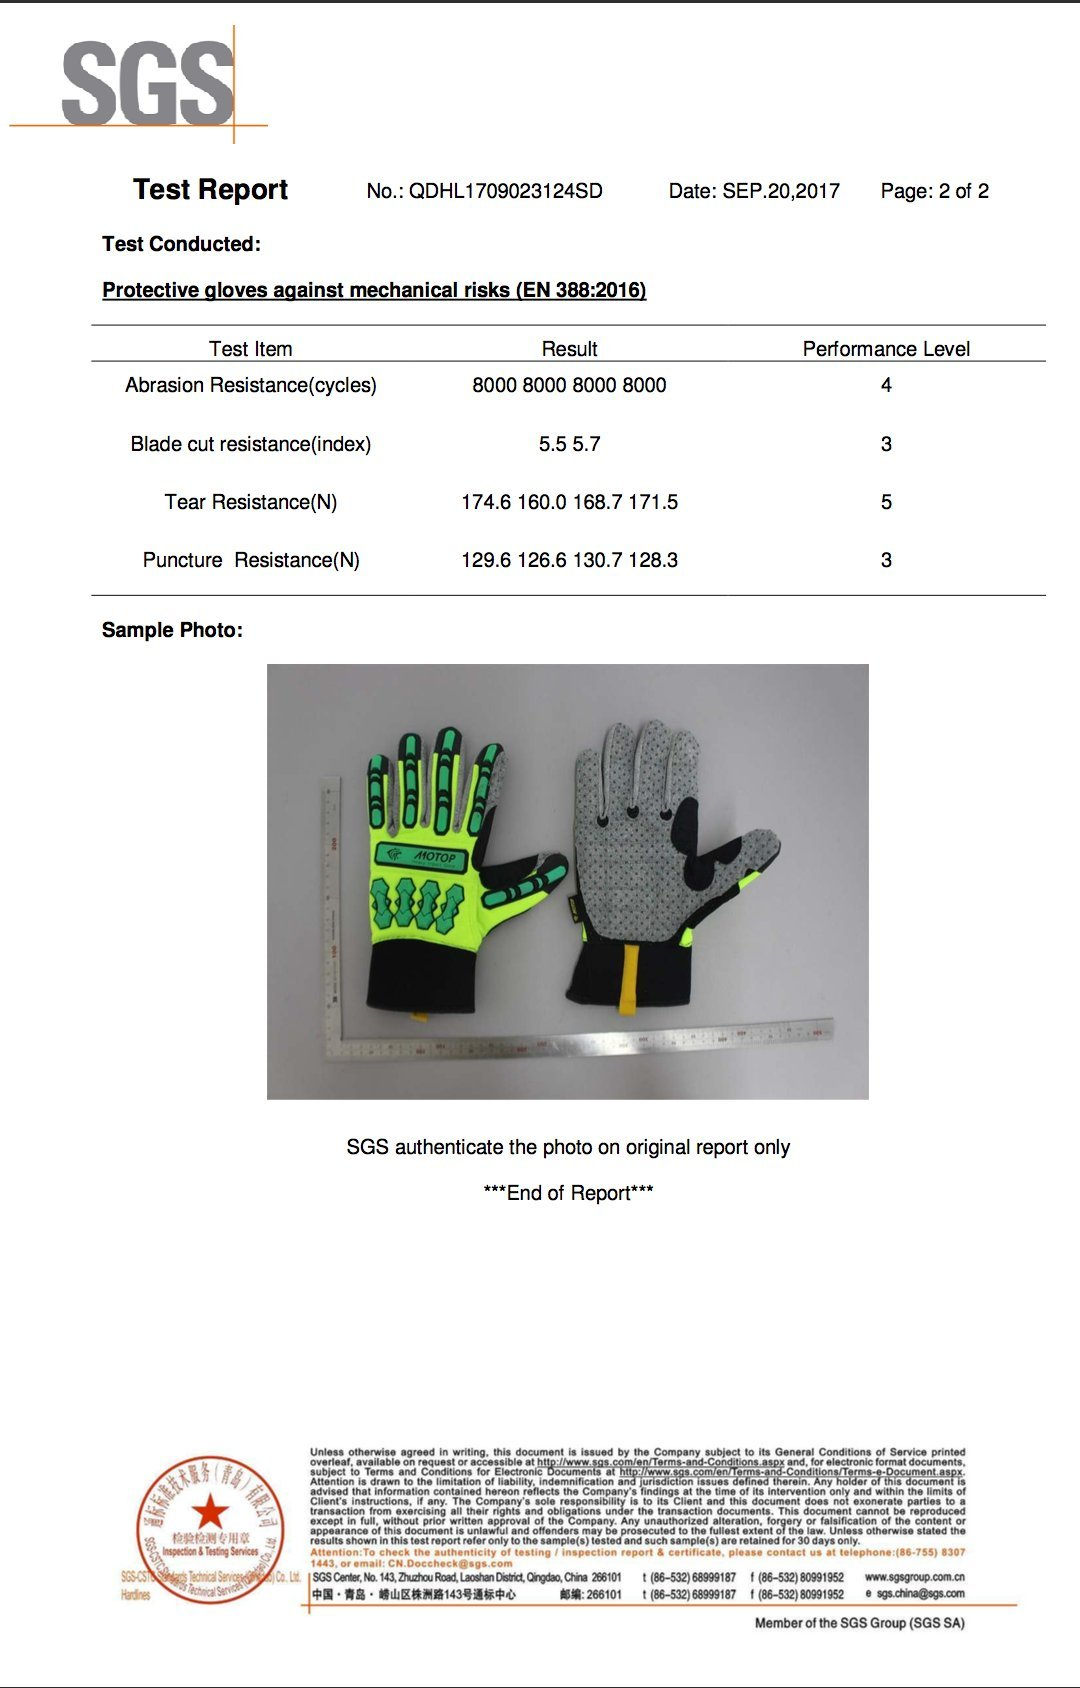 Heavy-Duty Work Gloves Professional-Grade Protection & Durability | Synthetic Leather Pam, Hard PVC Knuckle Reinforcement | Cut, Puncture, Impact Resistant